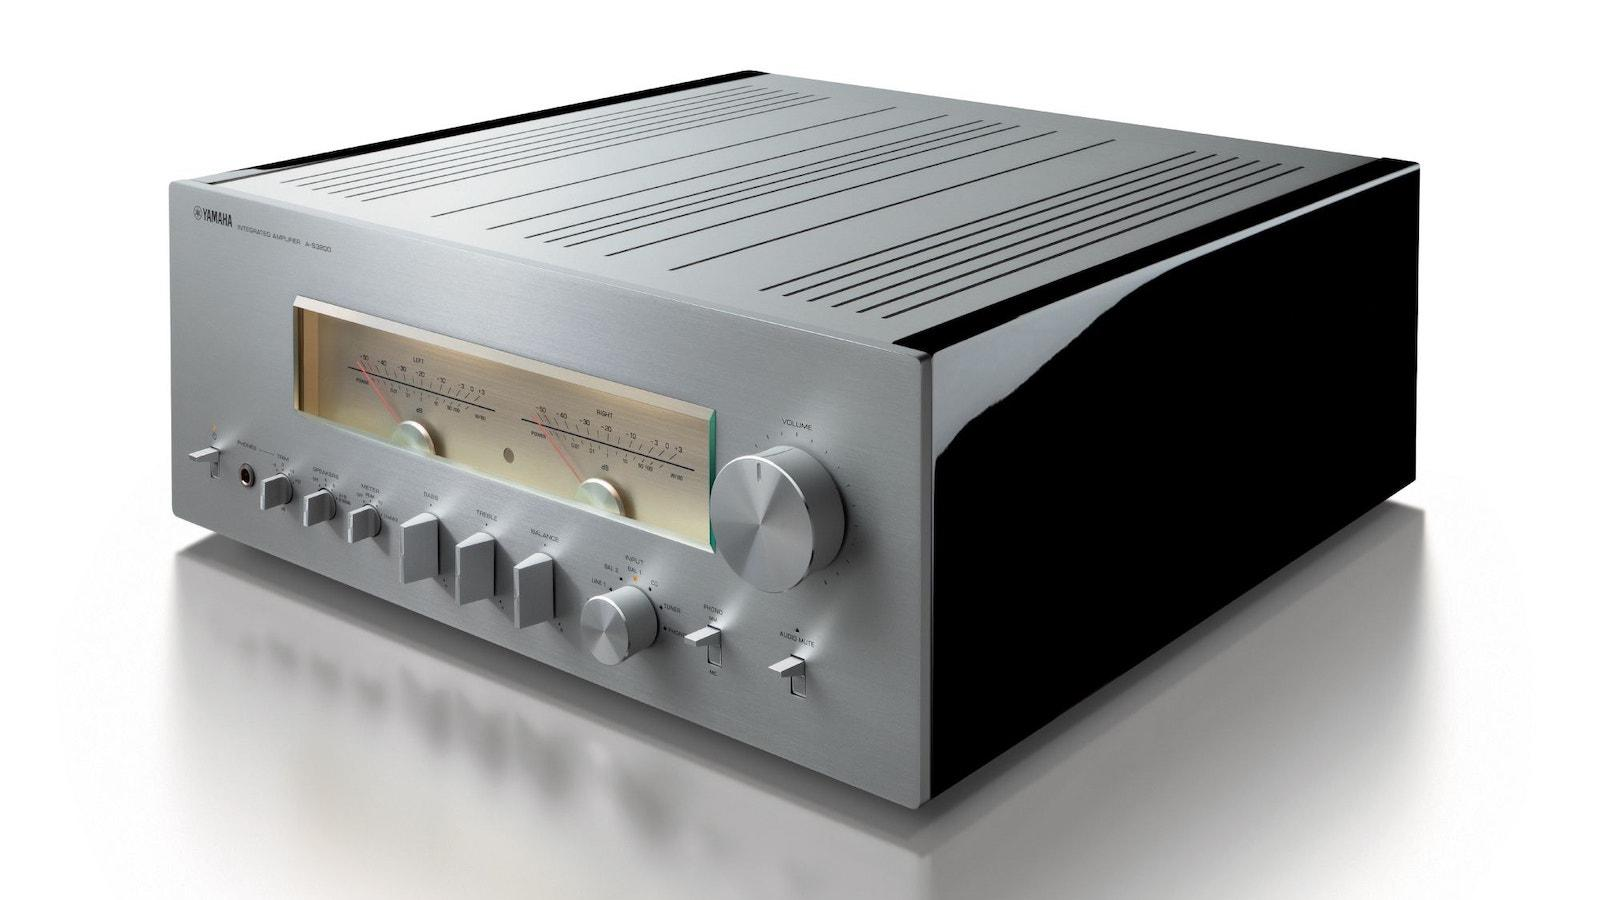 Yamaha A-S3200 Integrated Amplifier (Silver) Angle